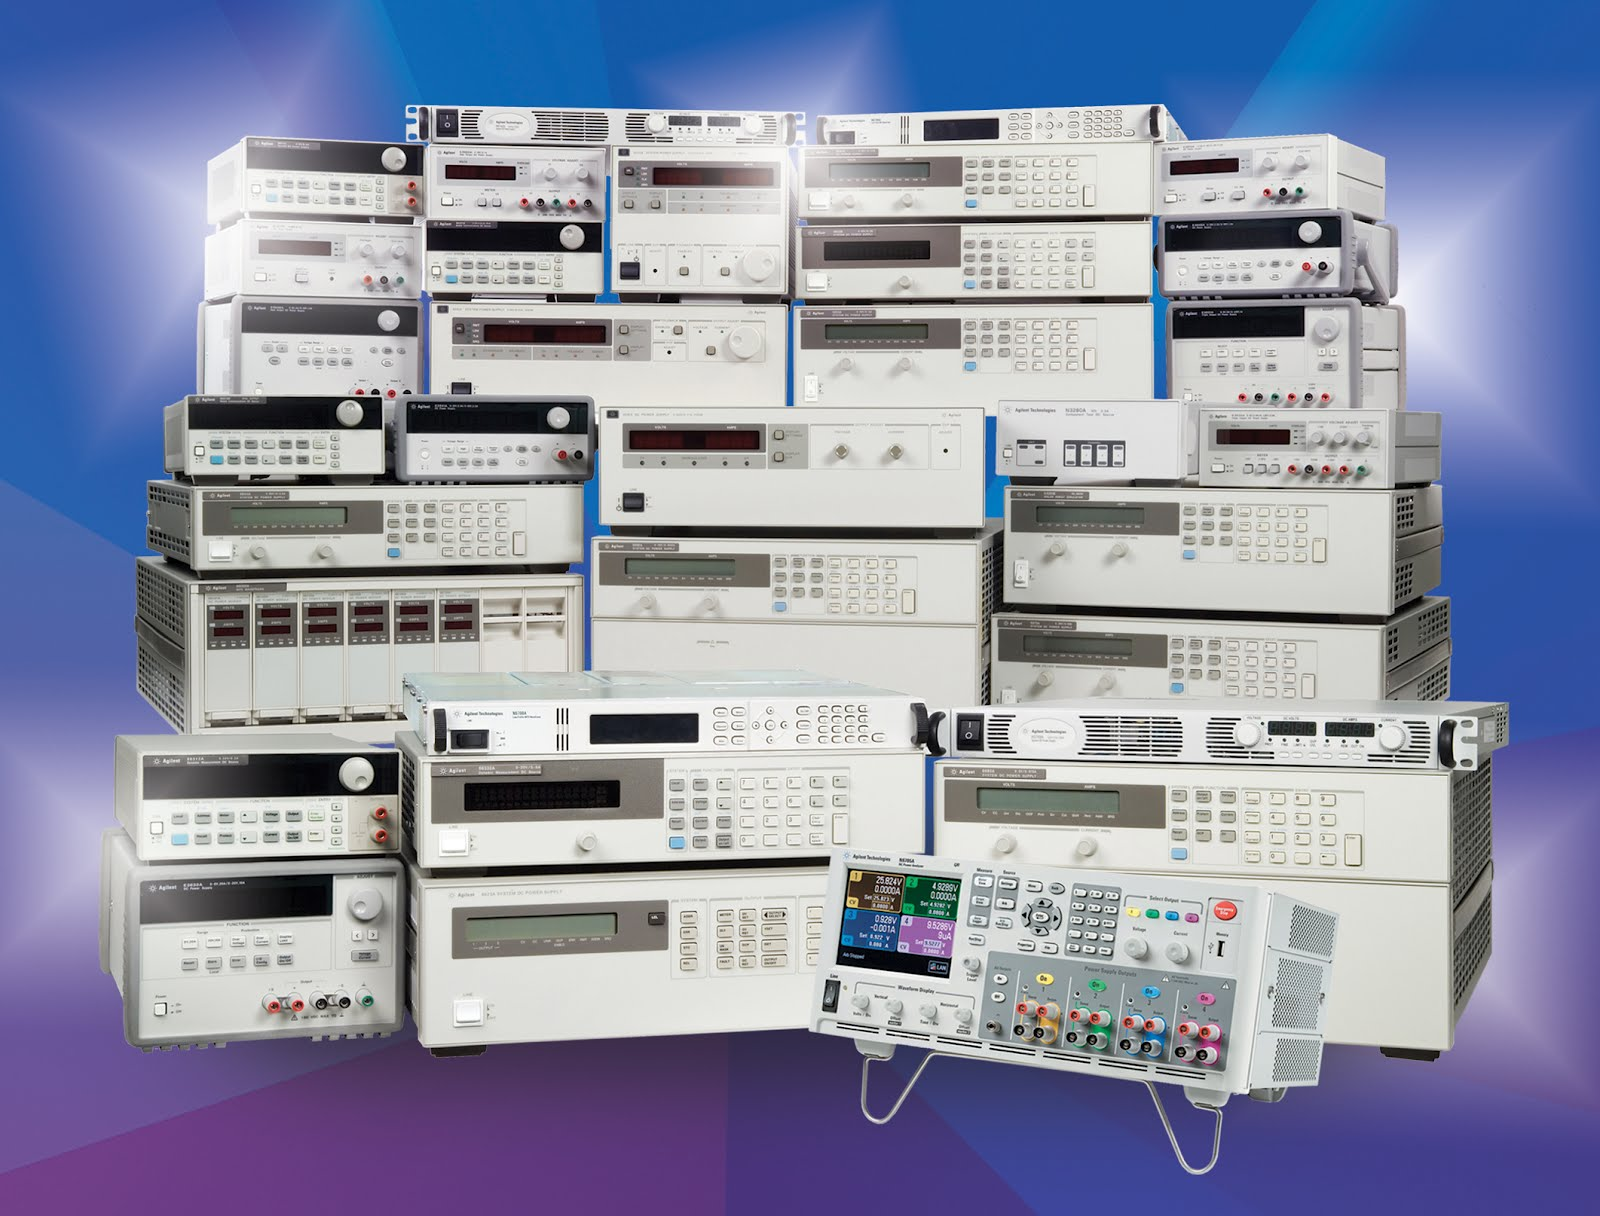 Watts Up How To Read Your Dc Power Supplys Data Sheet Supply With Current Limiter And Stand Alone Once You Know Duts Requirements Can Begin Peruse The Specs In Various Sheets Find One That Meets Needs